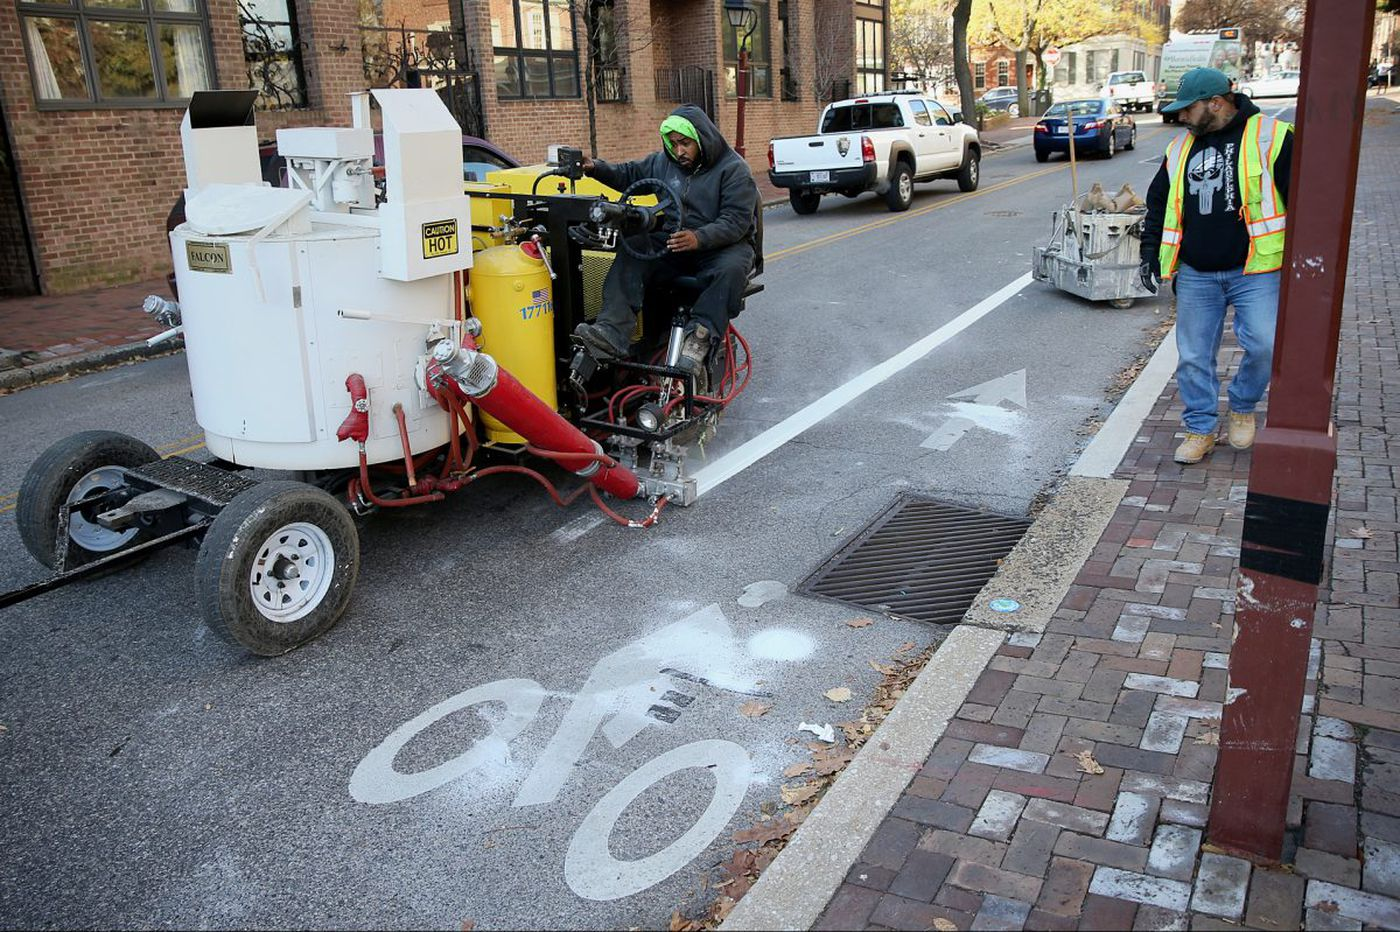 Petition demands Philly move faster to improve safety for cyclists